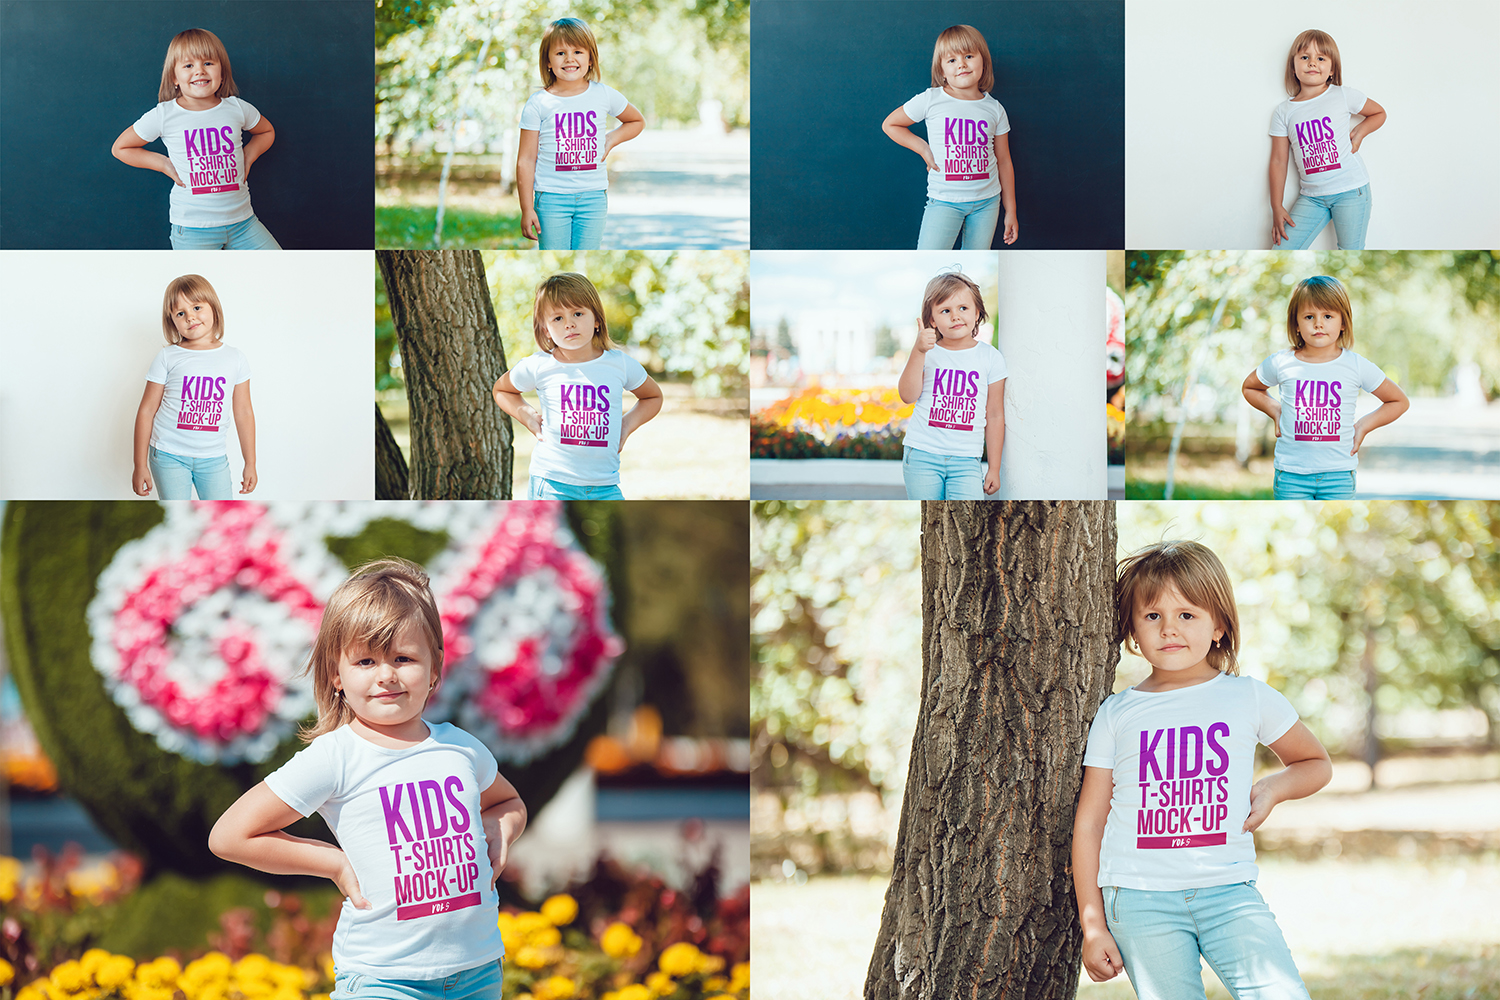 Kids T-Shirt Mock-Up Vol 5 example image 13